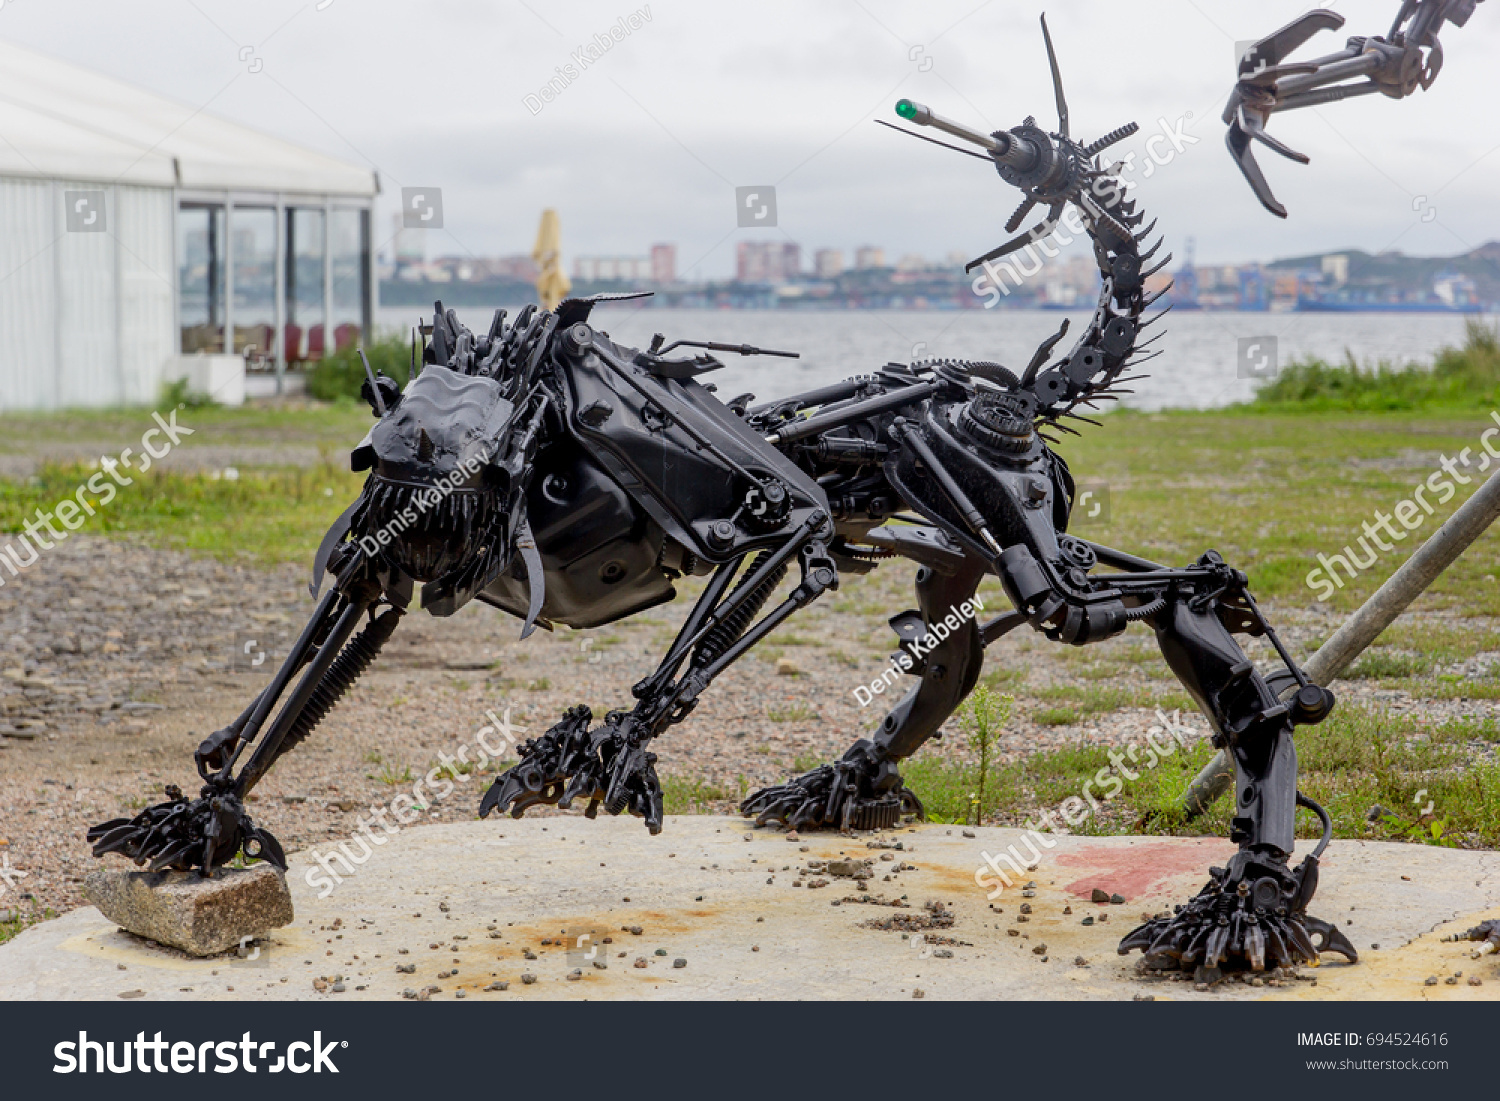 stock-photo-vladivostok-russia-sculpture